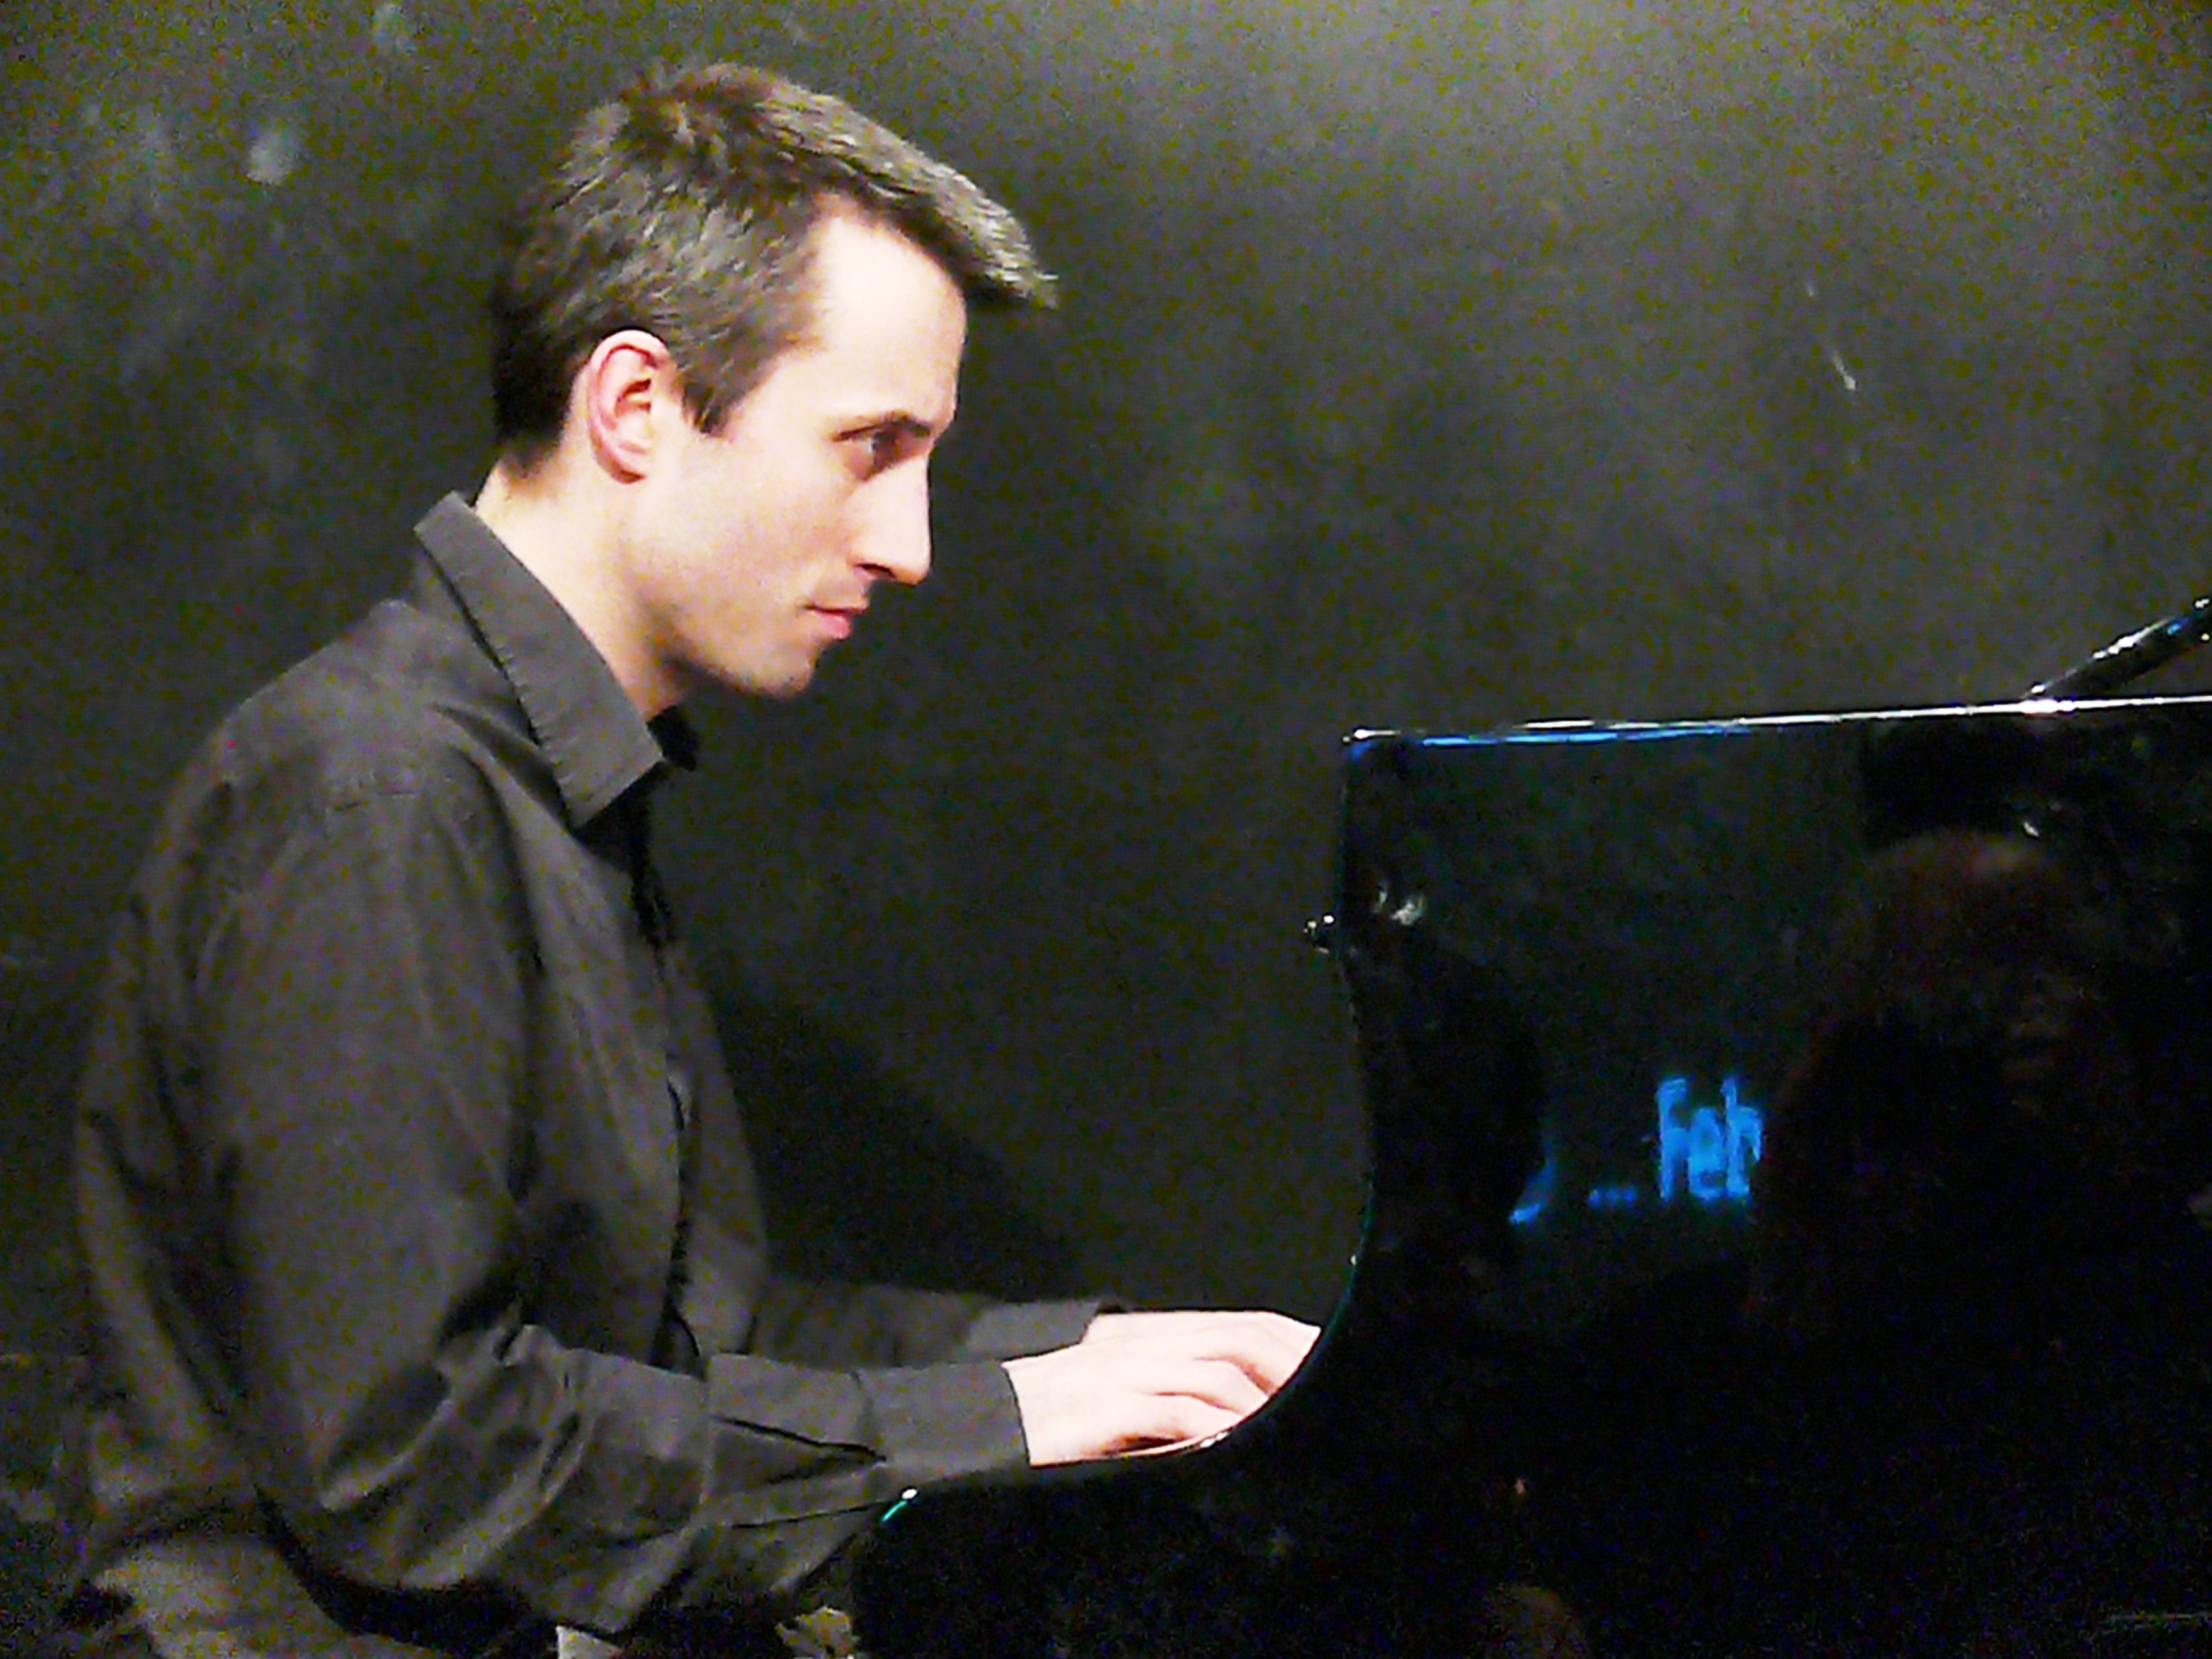 Alexander hawkins at the vortex, london in february 2013